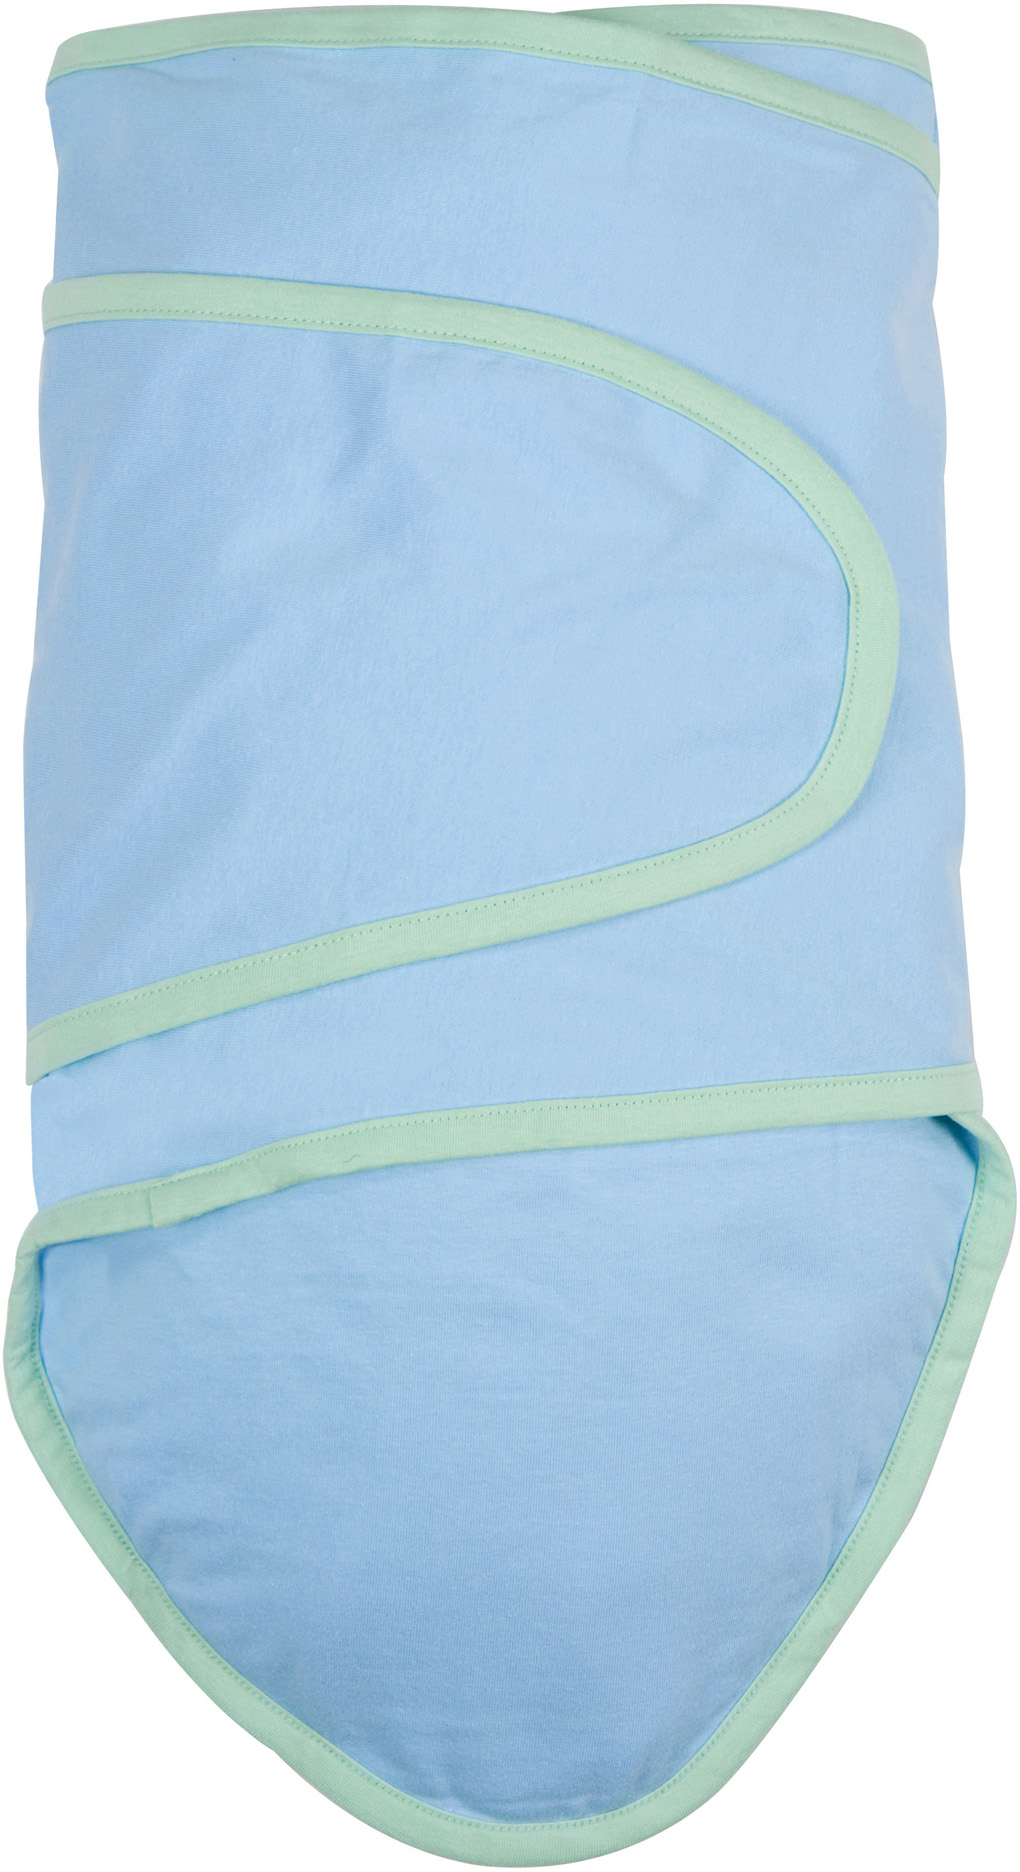 Miracle Blanket®: Blue With Green Trim